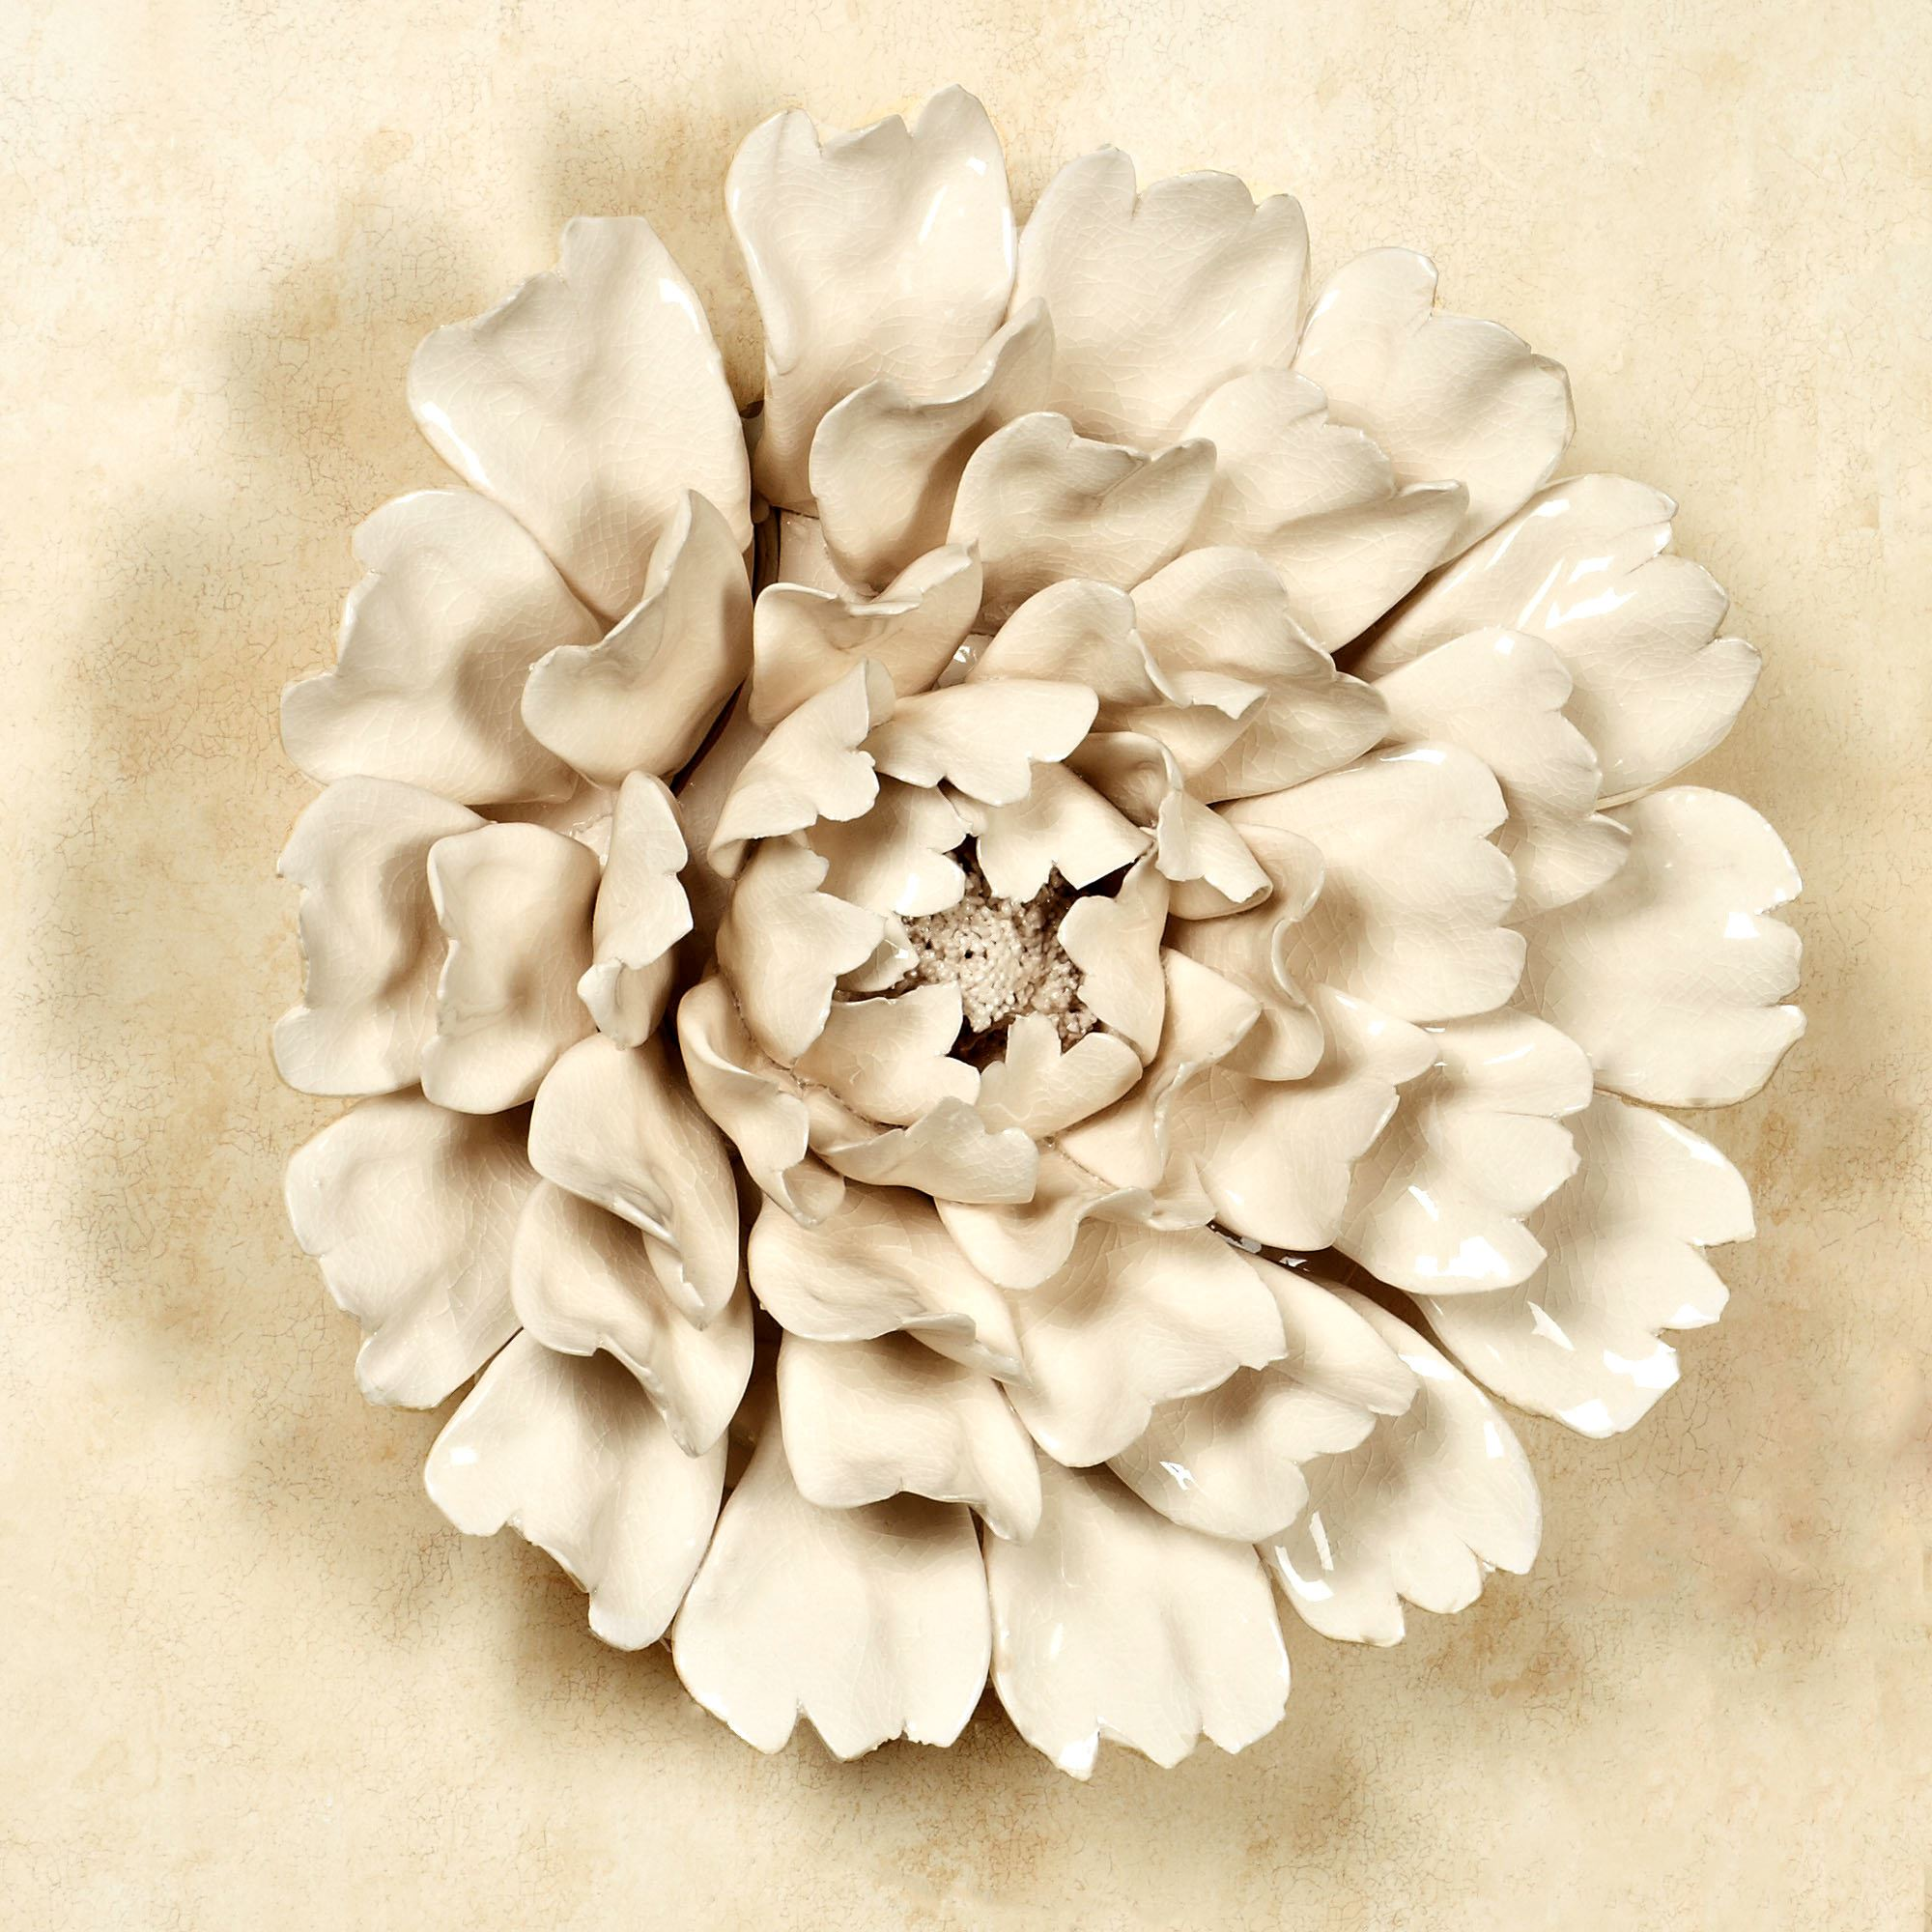 Ceramic Flower Blossom Wall Art